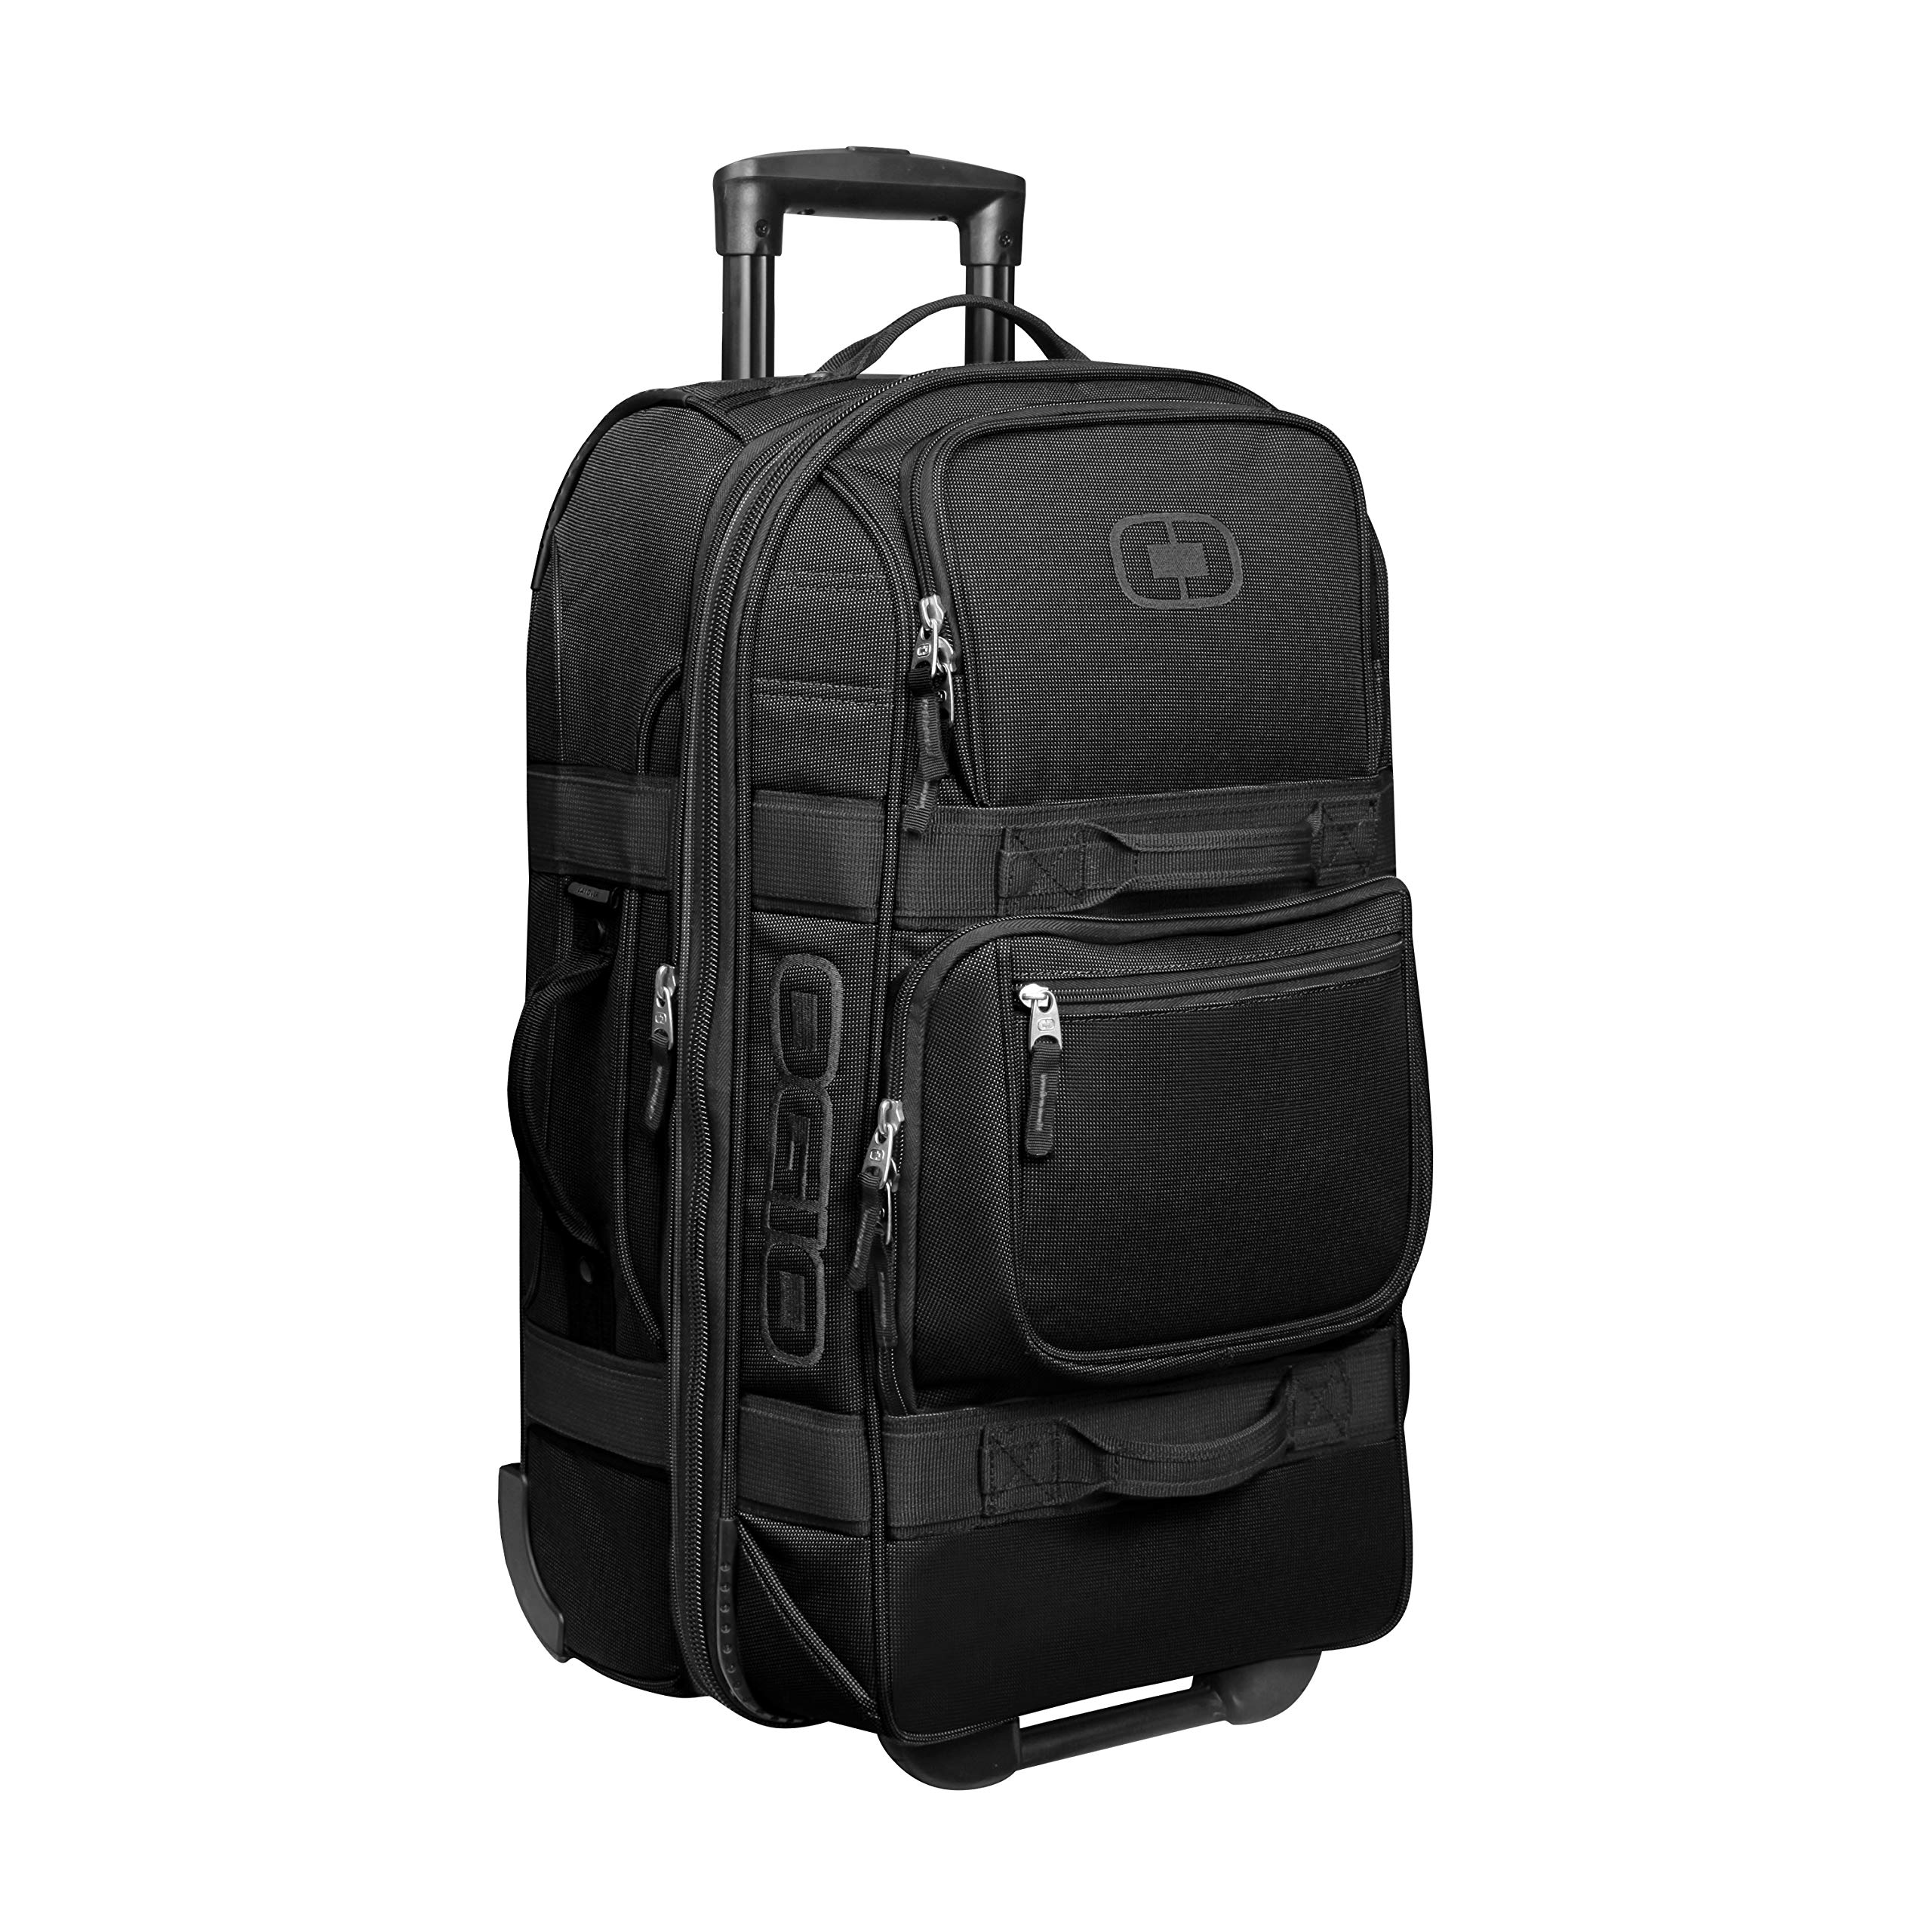 Ogio 5918039OG Stealth Onu 22 (style may vary)